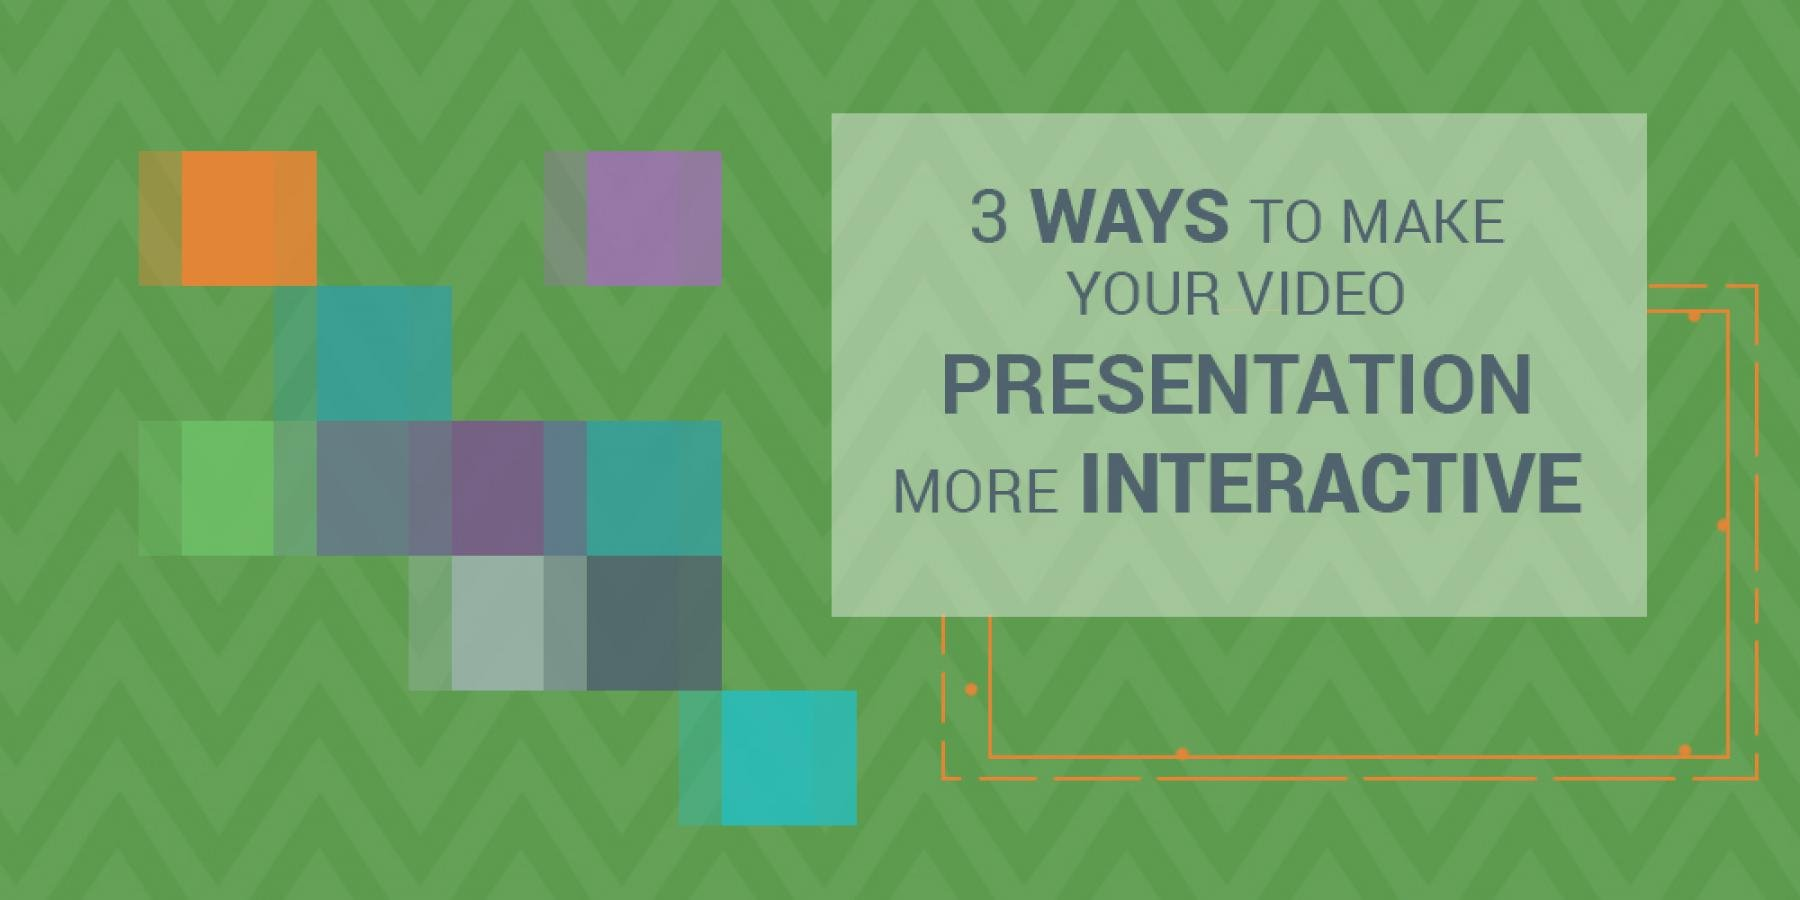 3 Way to Make Your Video Presentation More Interactive